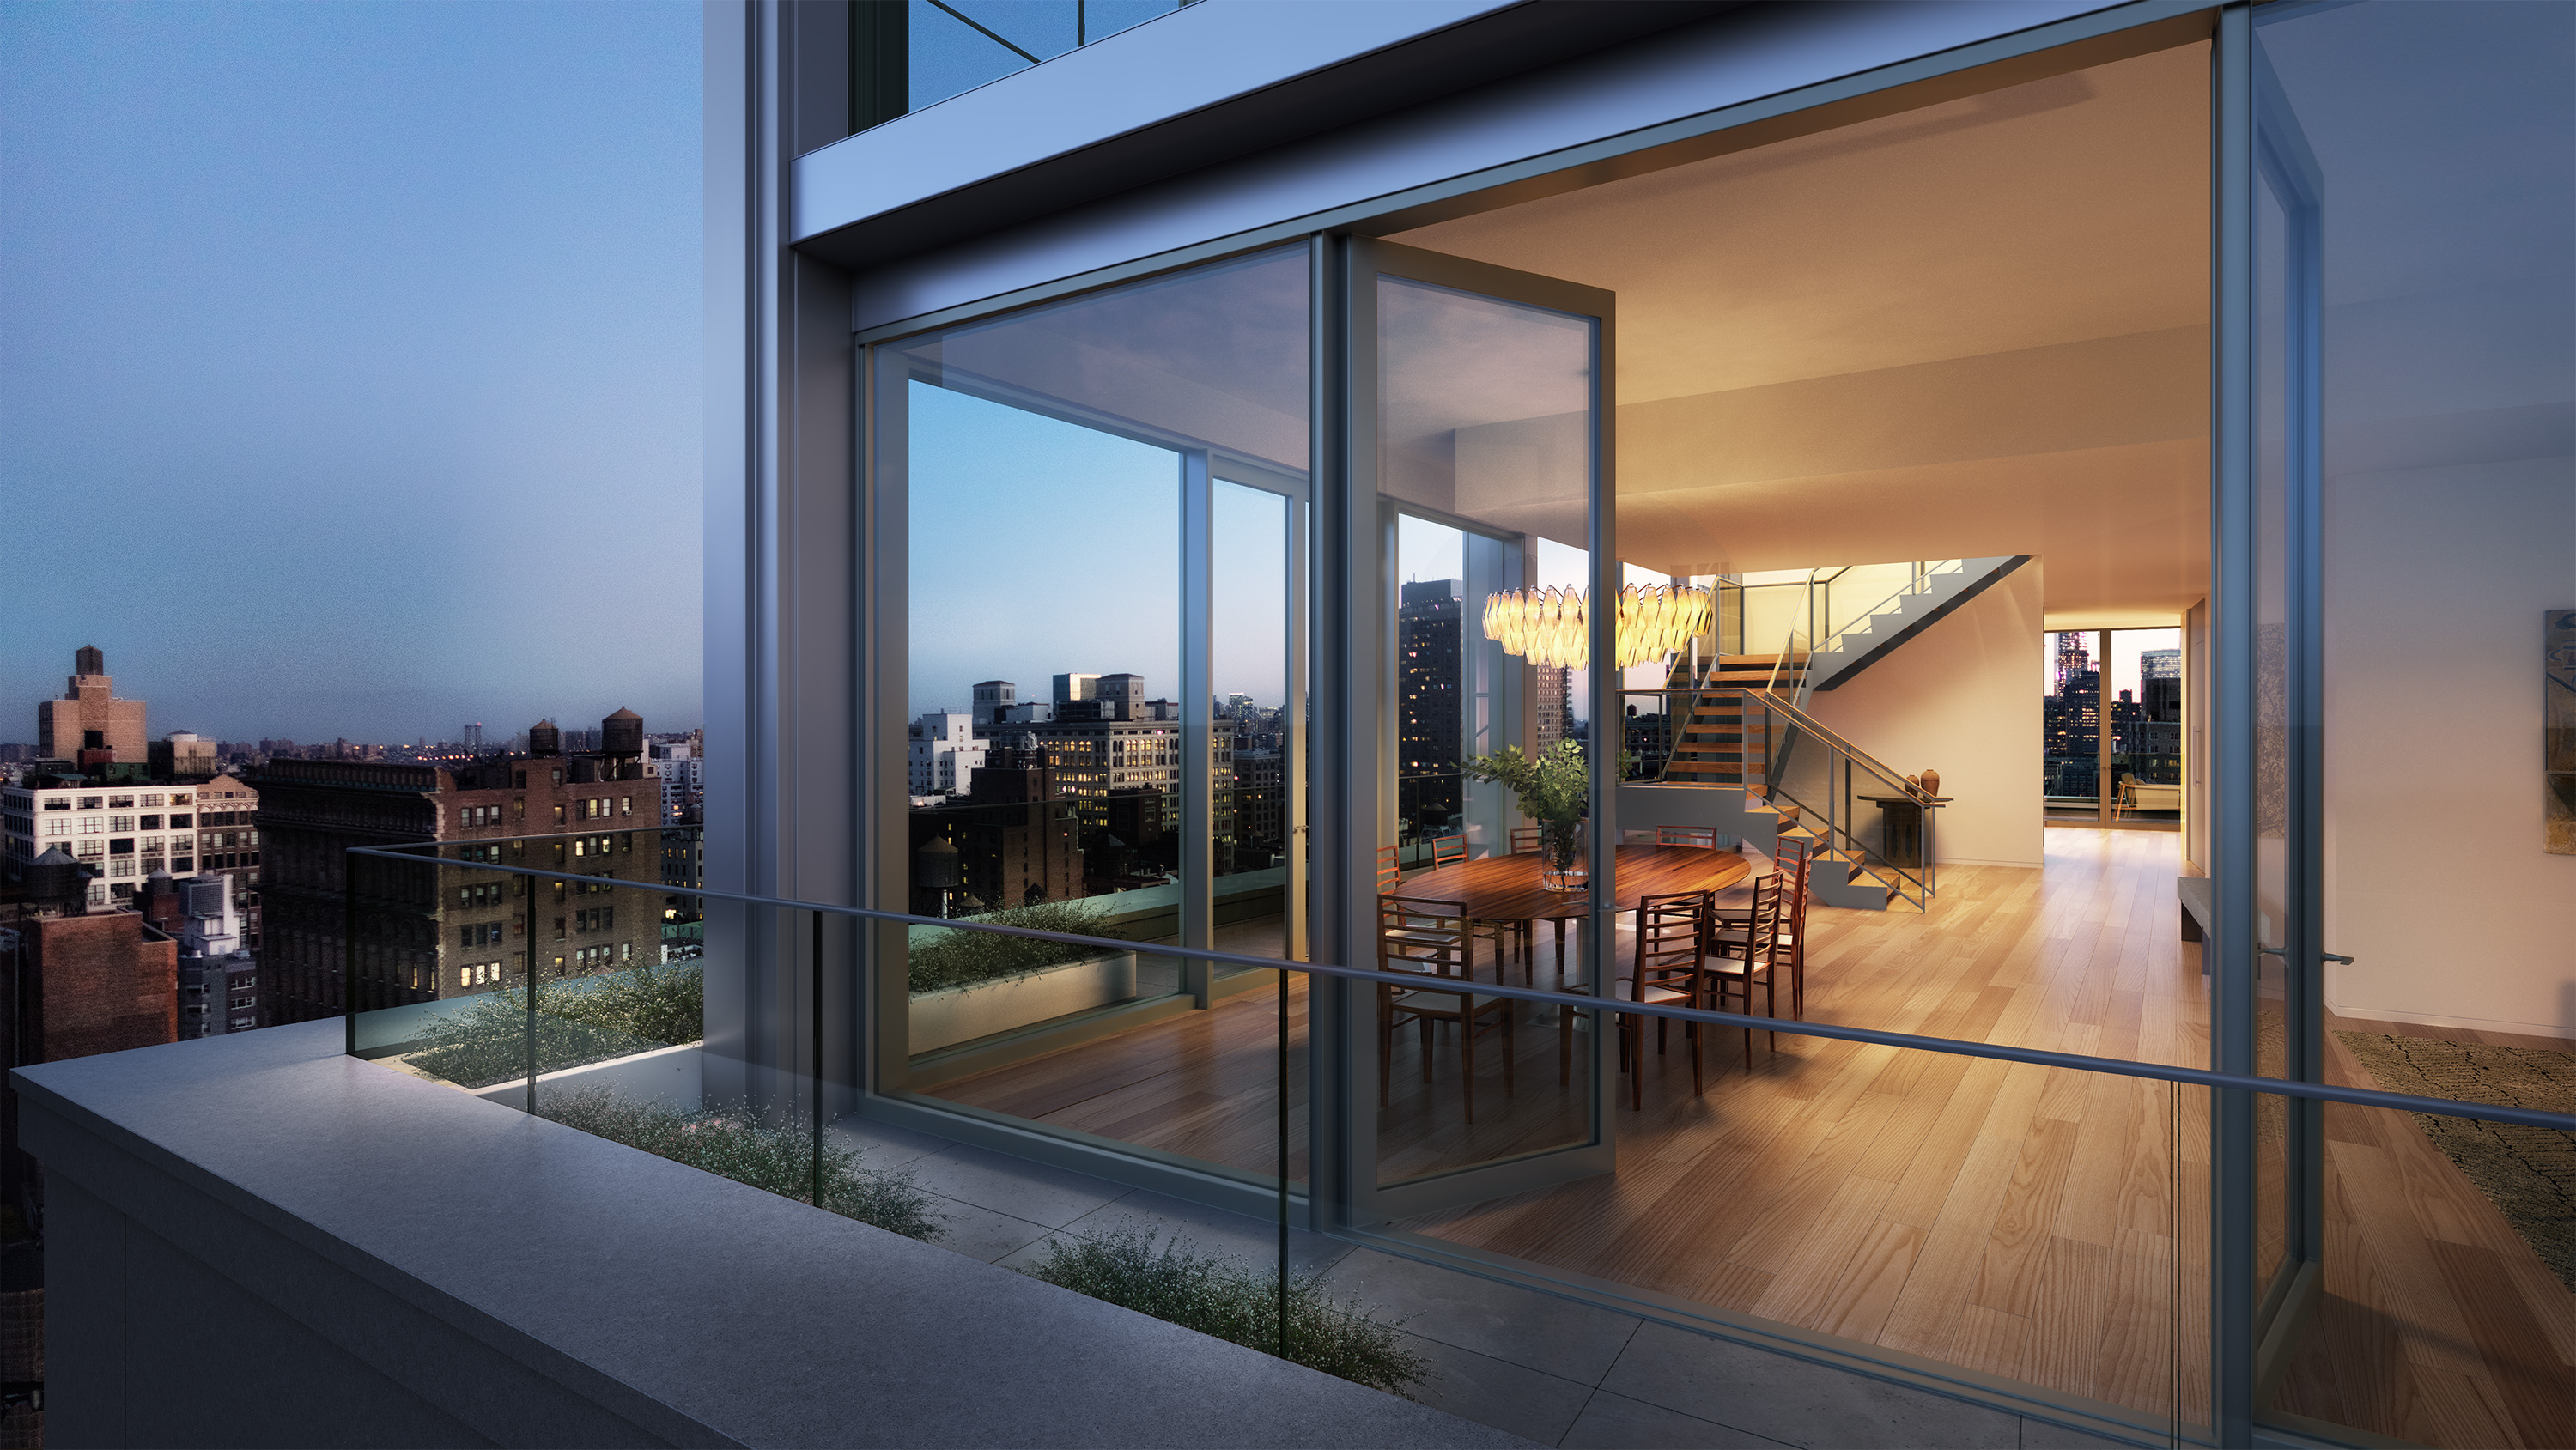 Penthouse at 21 East 12th Street, rendering by Wordsearch